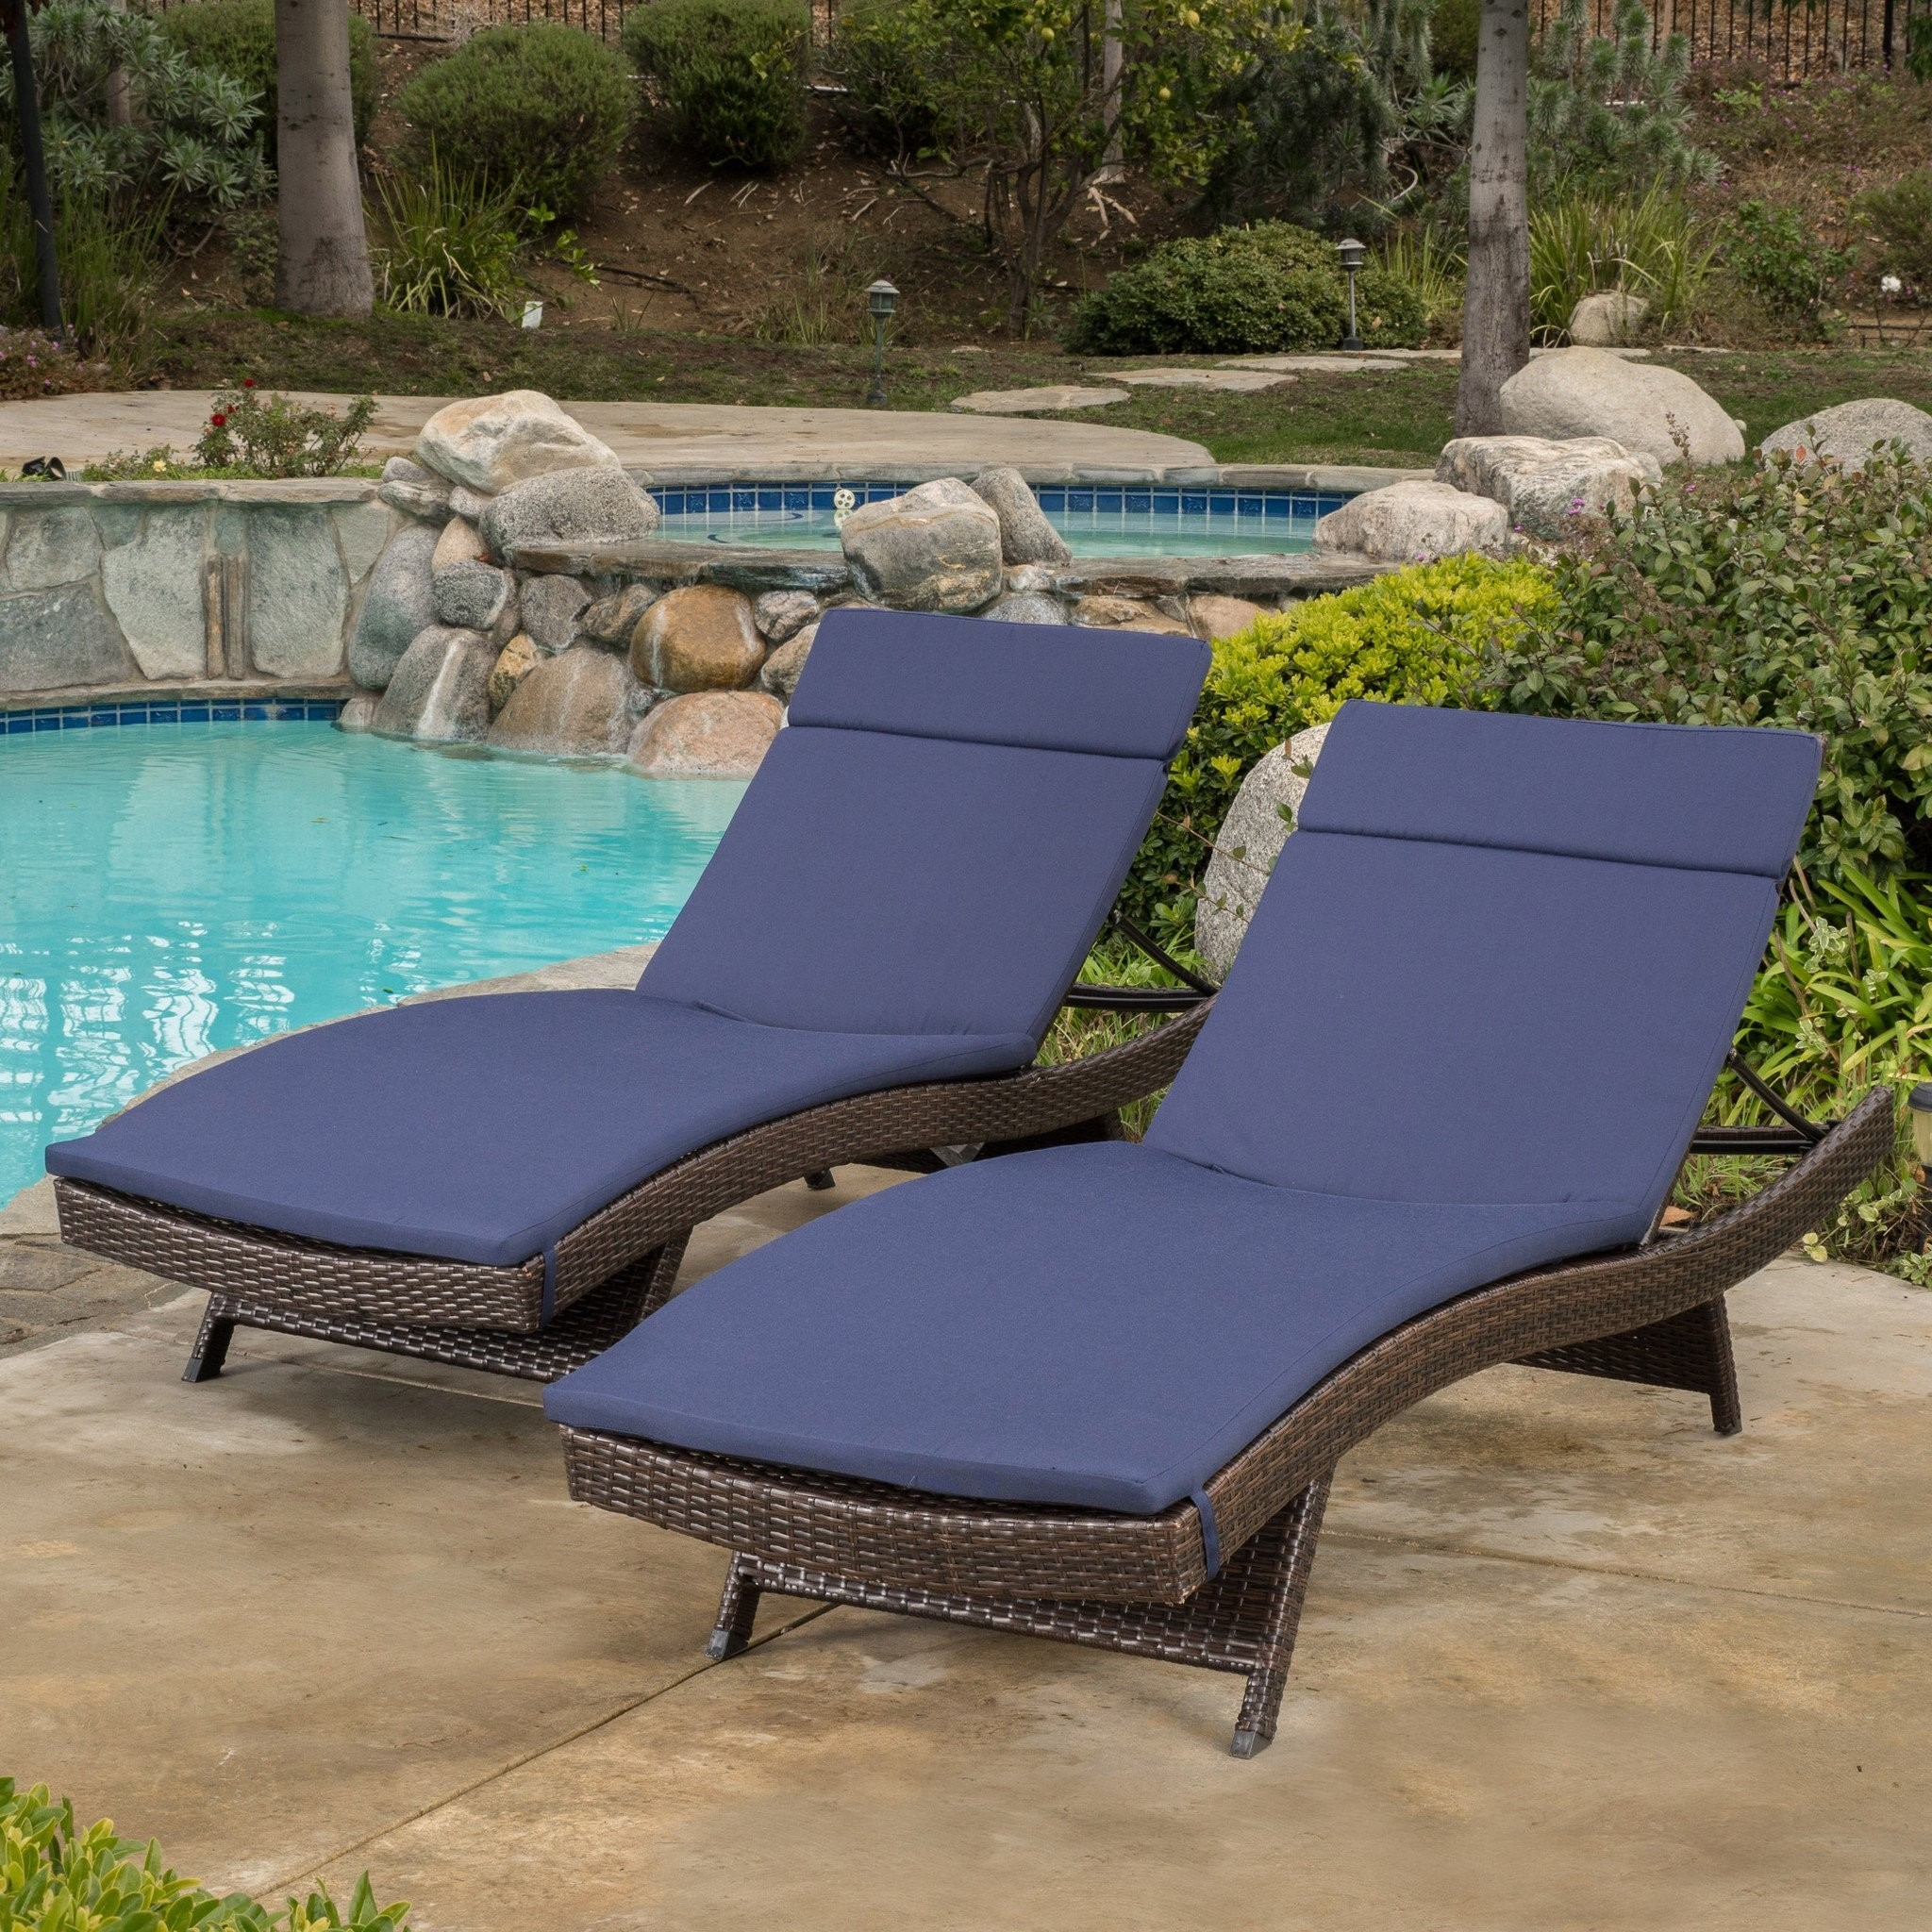 Lakeport Outdoor Adjustable Chaise Lounge Chairs w...